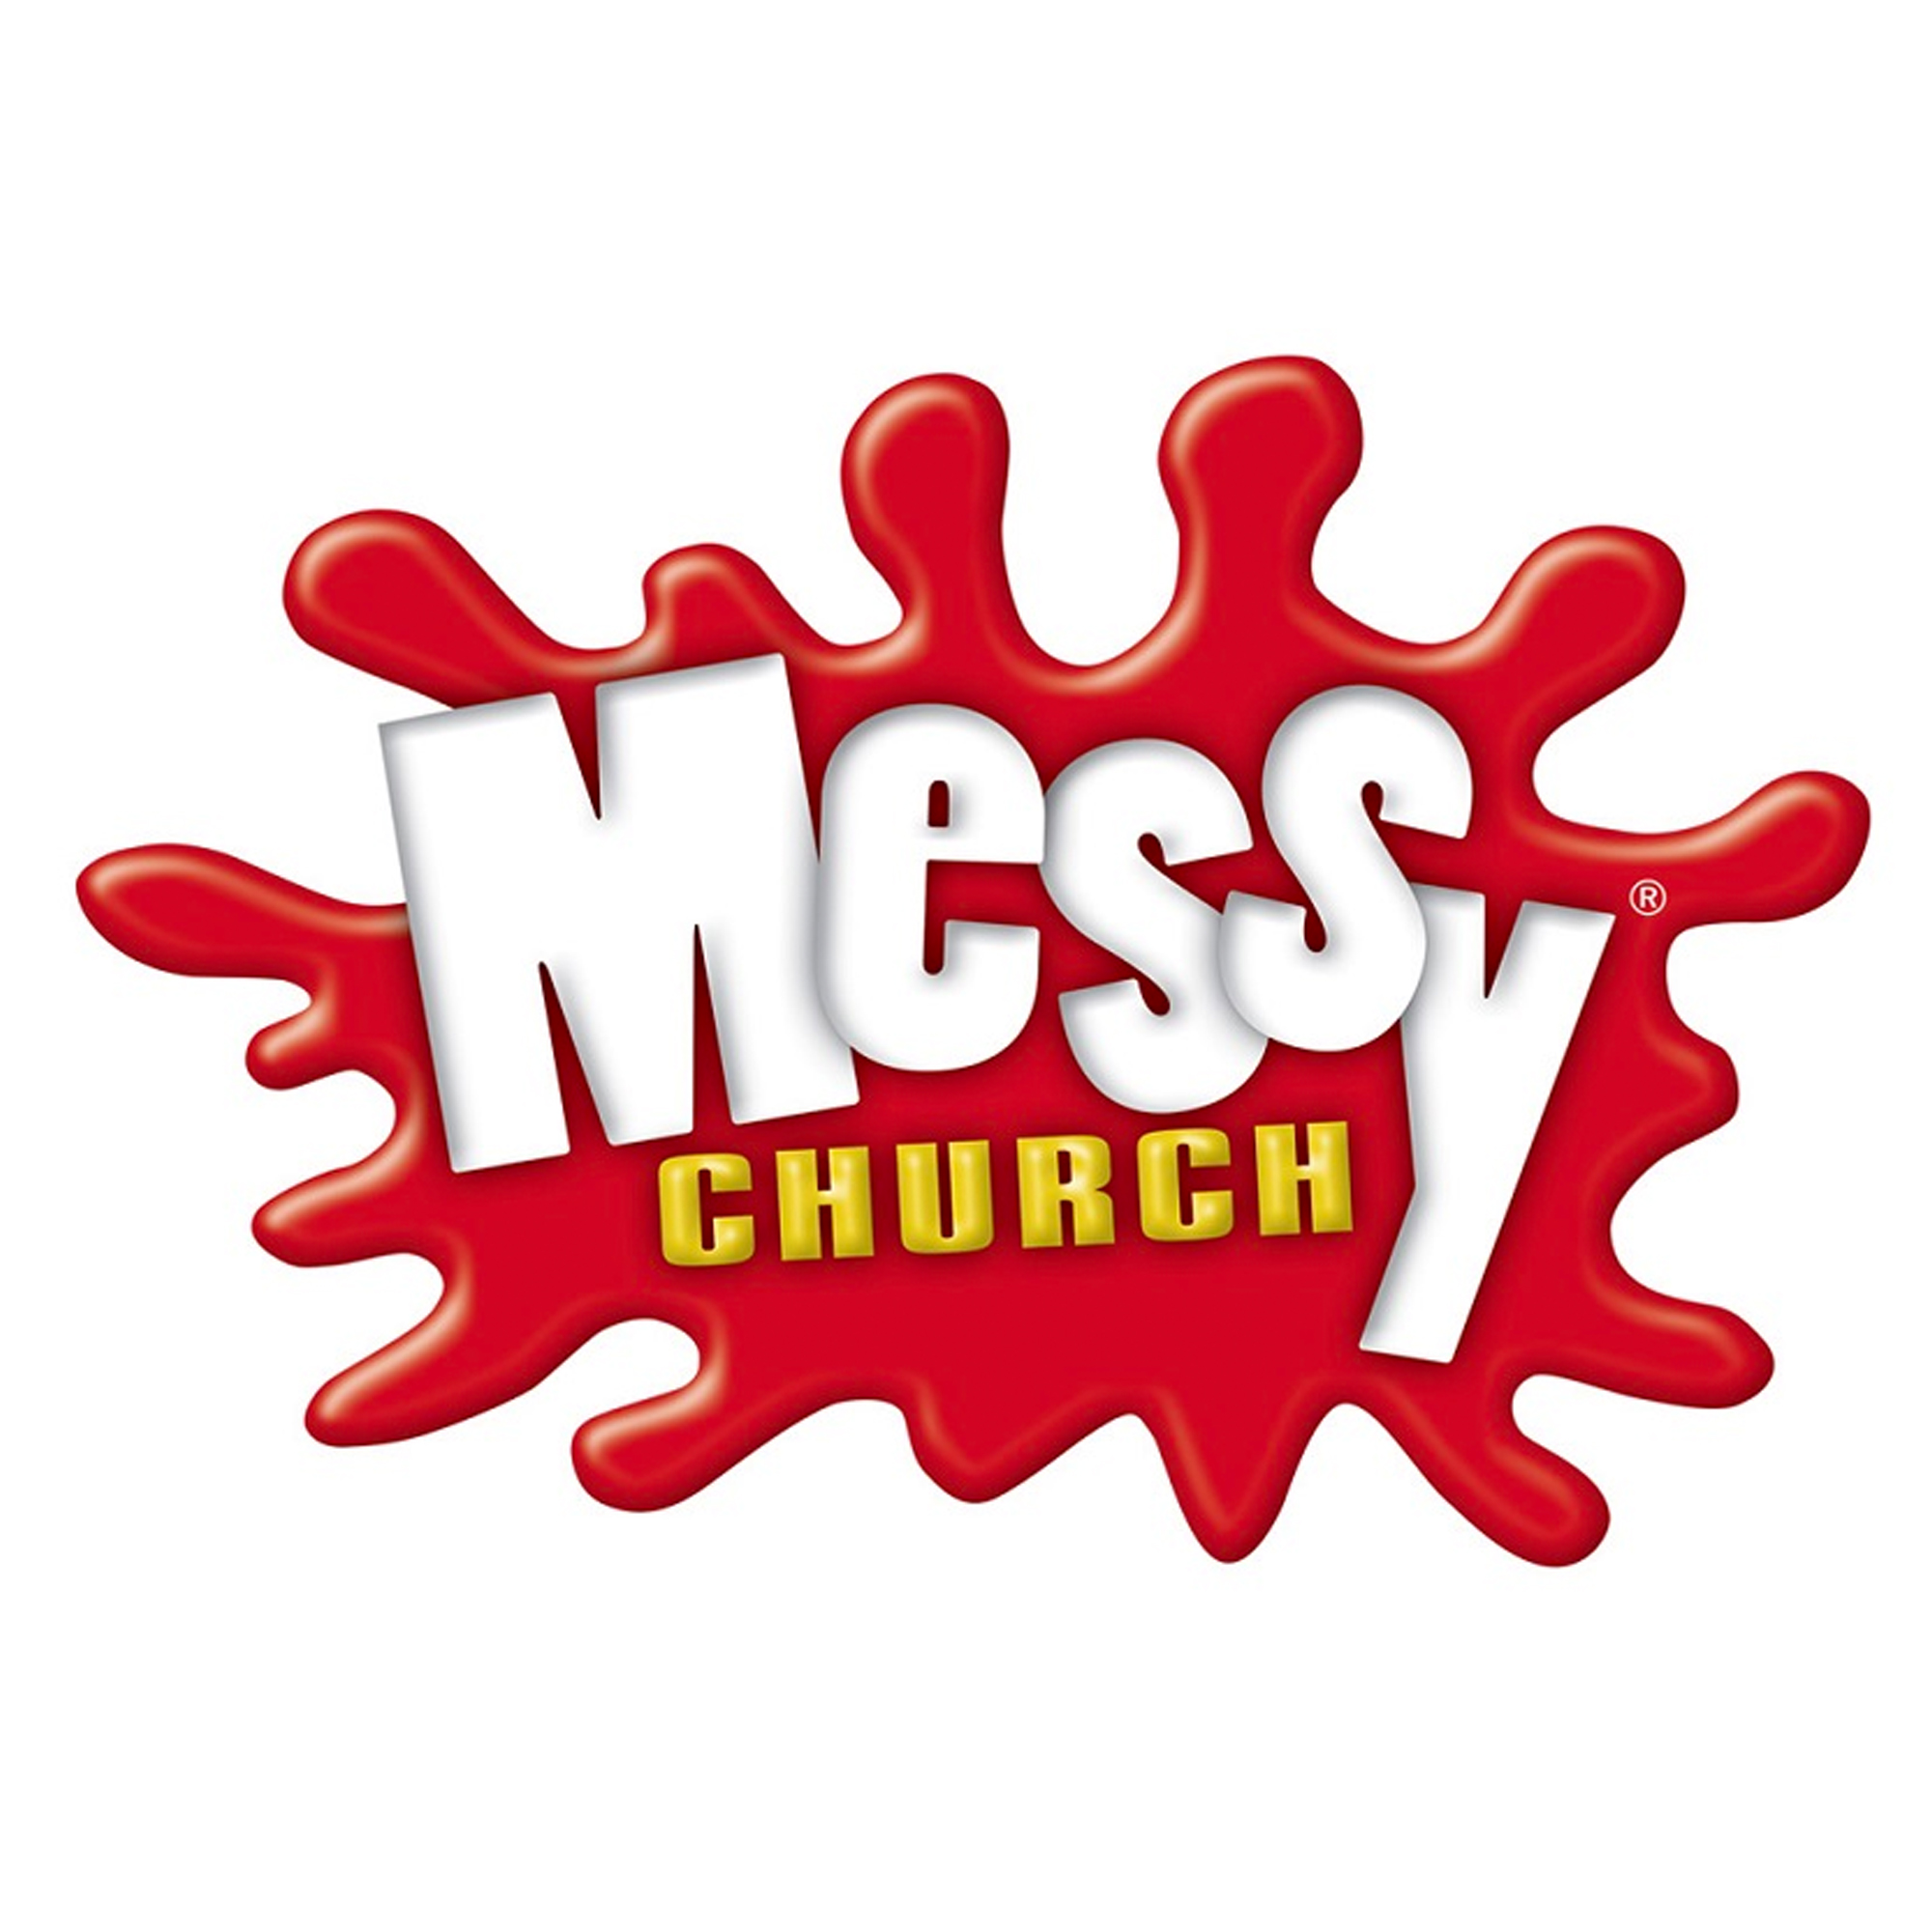 MESSY CHURCH - Messy Church is on the third Saturday of the month (except in December and August). It is church with lots of fun and food! Each service is for families and open to all.Children must be accompanied by an adult.